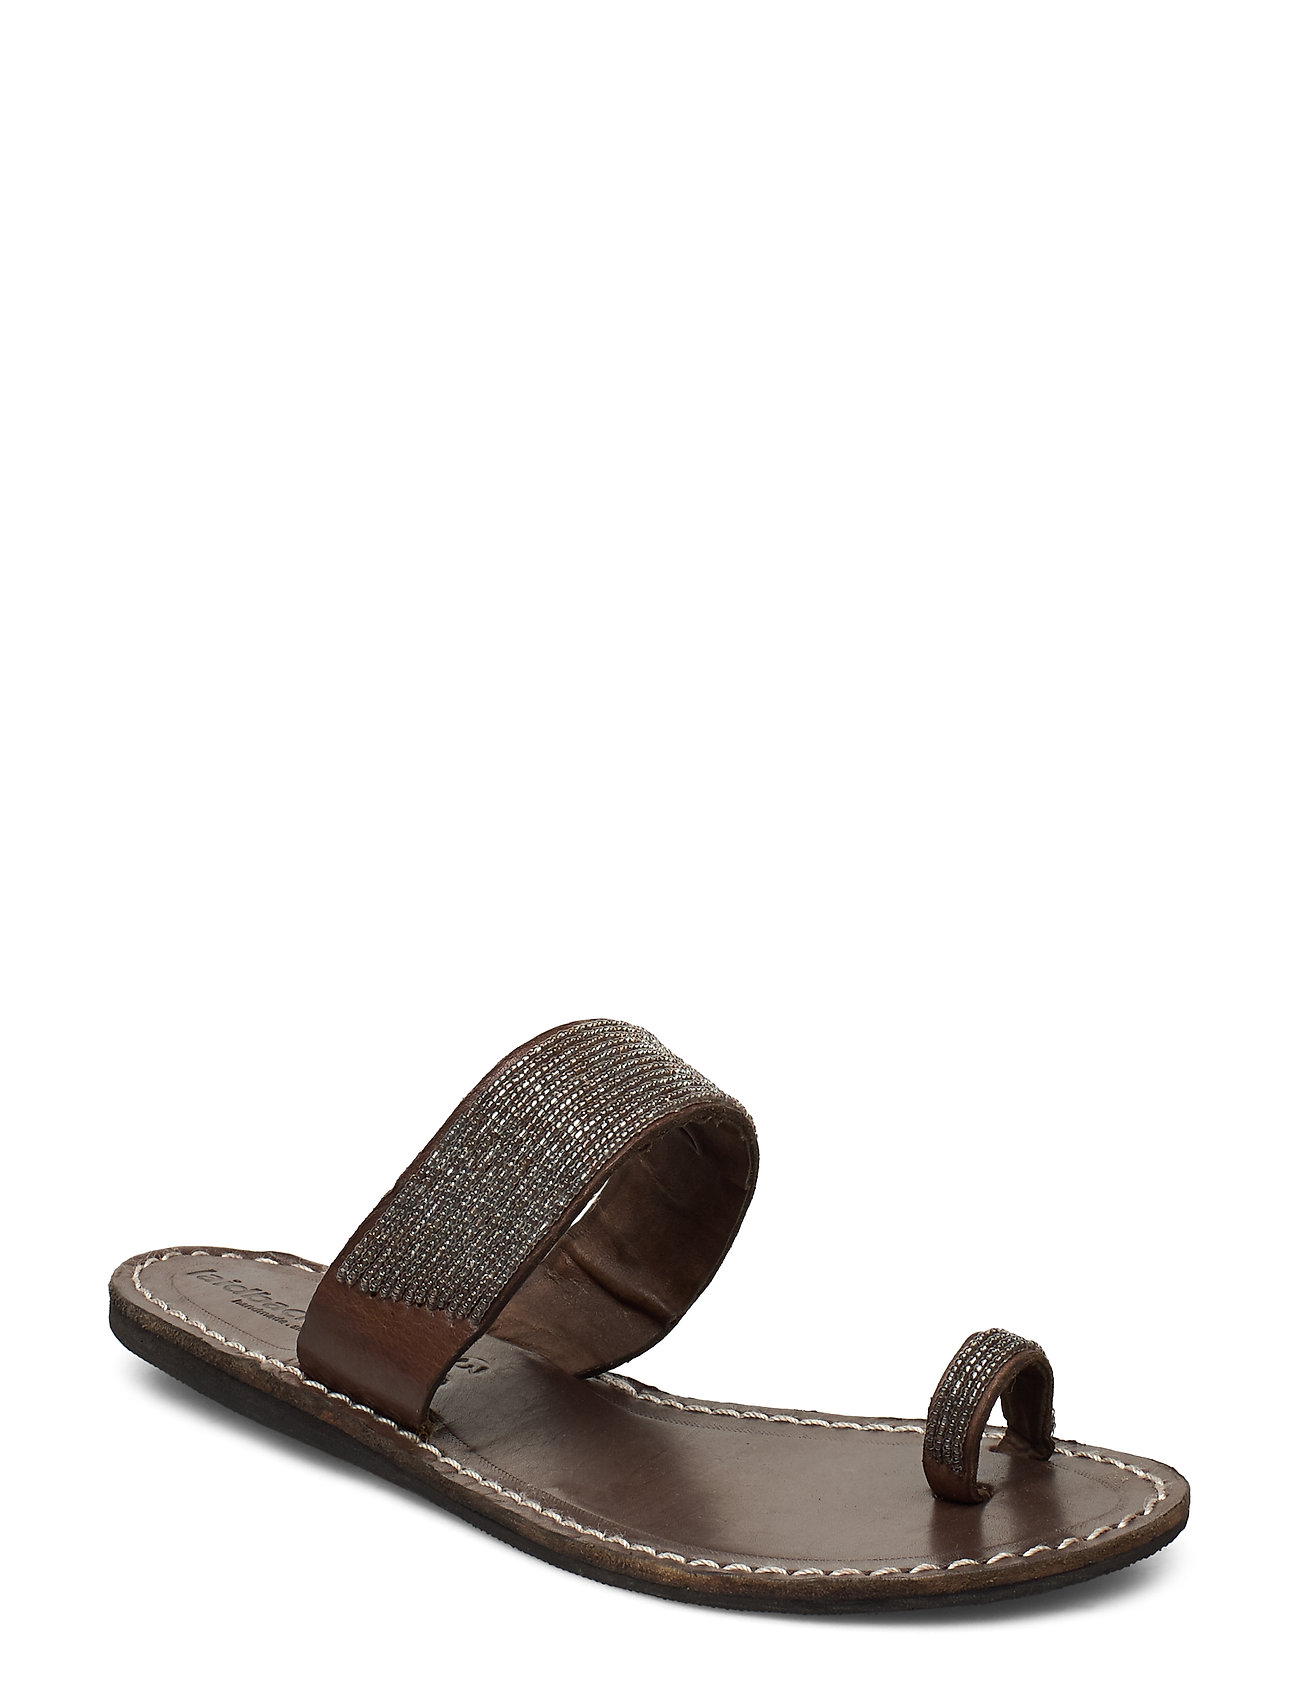 Image of Trent Flat Shoes Summer Shoes Flat Sandals Brun Laidback London (3455508015)